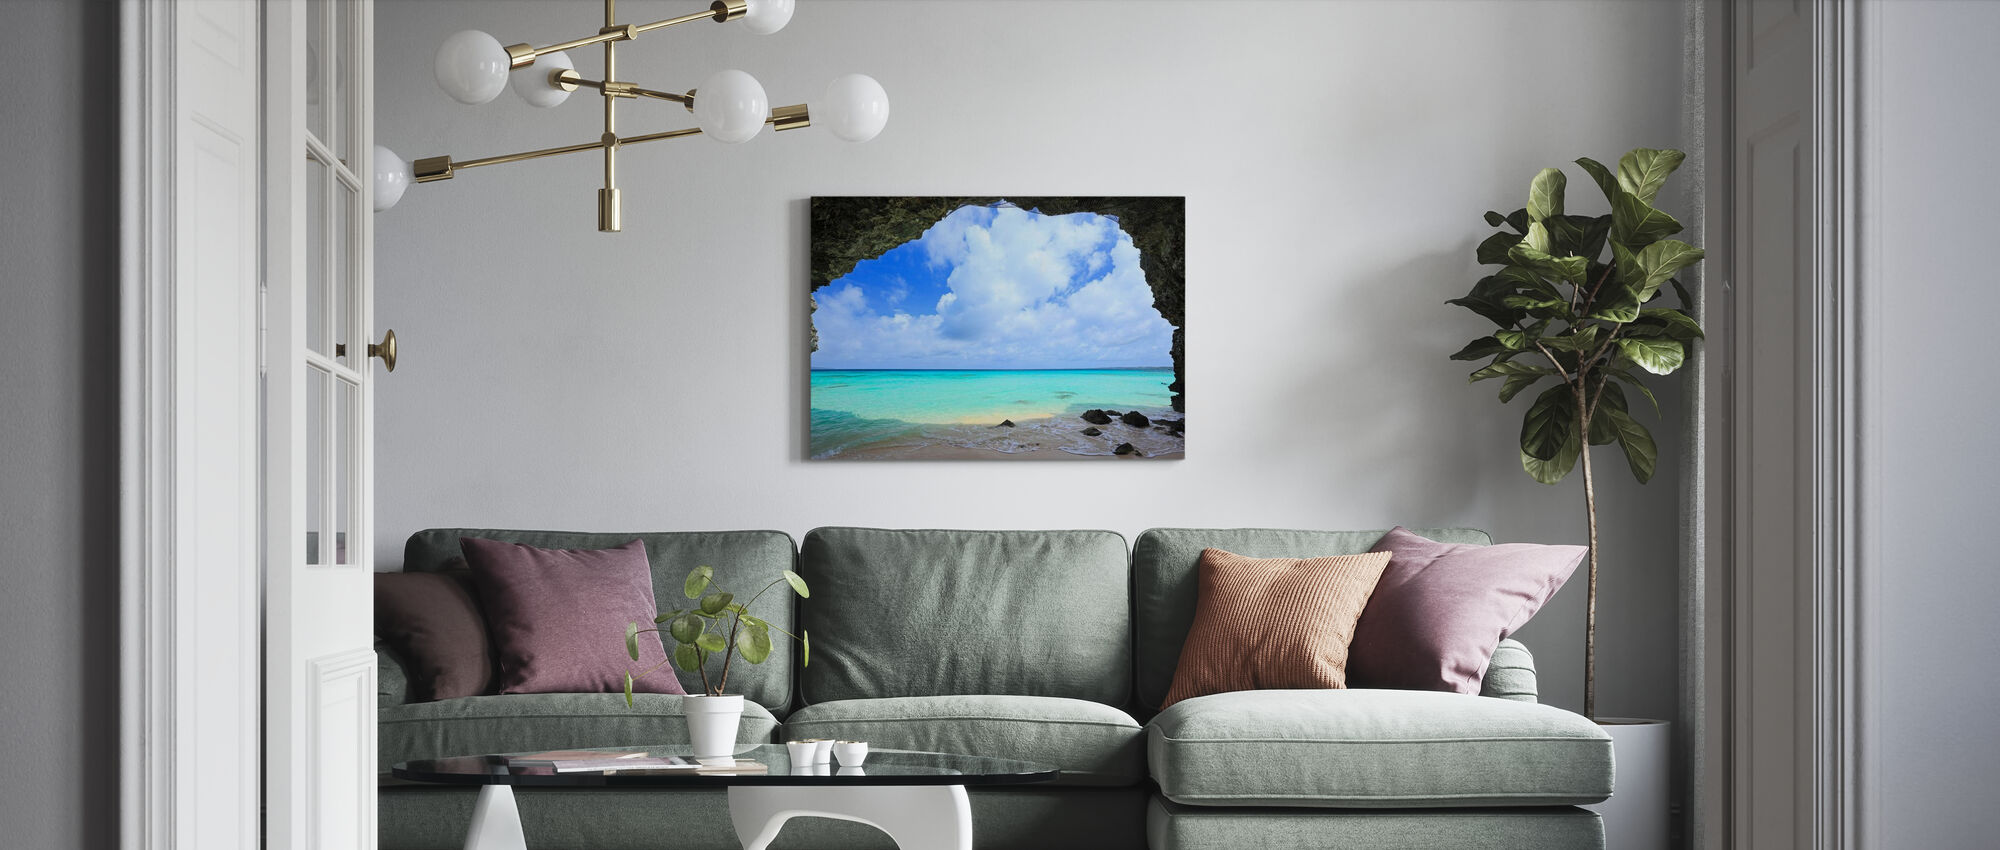 Crystal Clear - Canvas print - Living Room